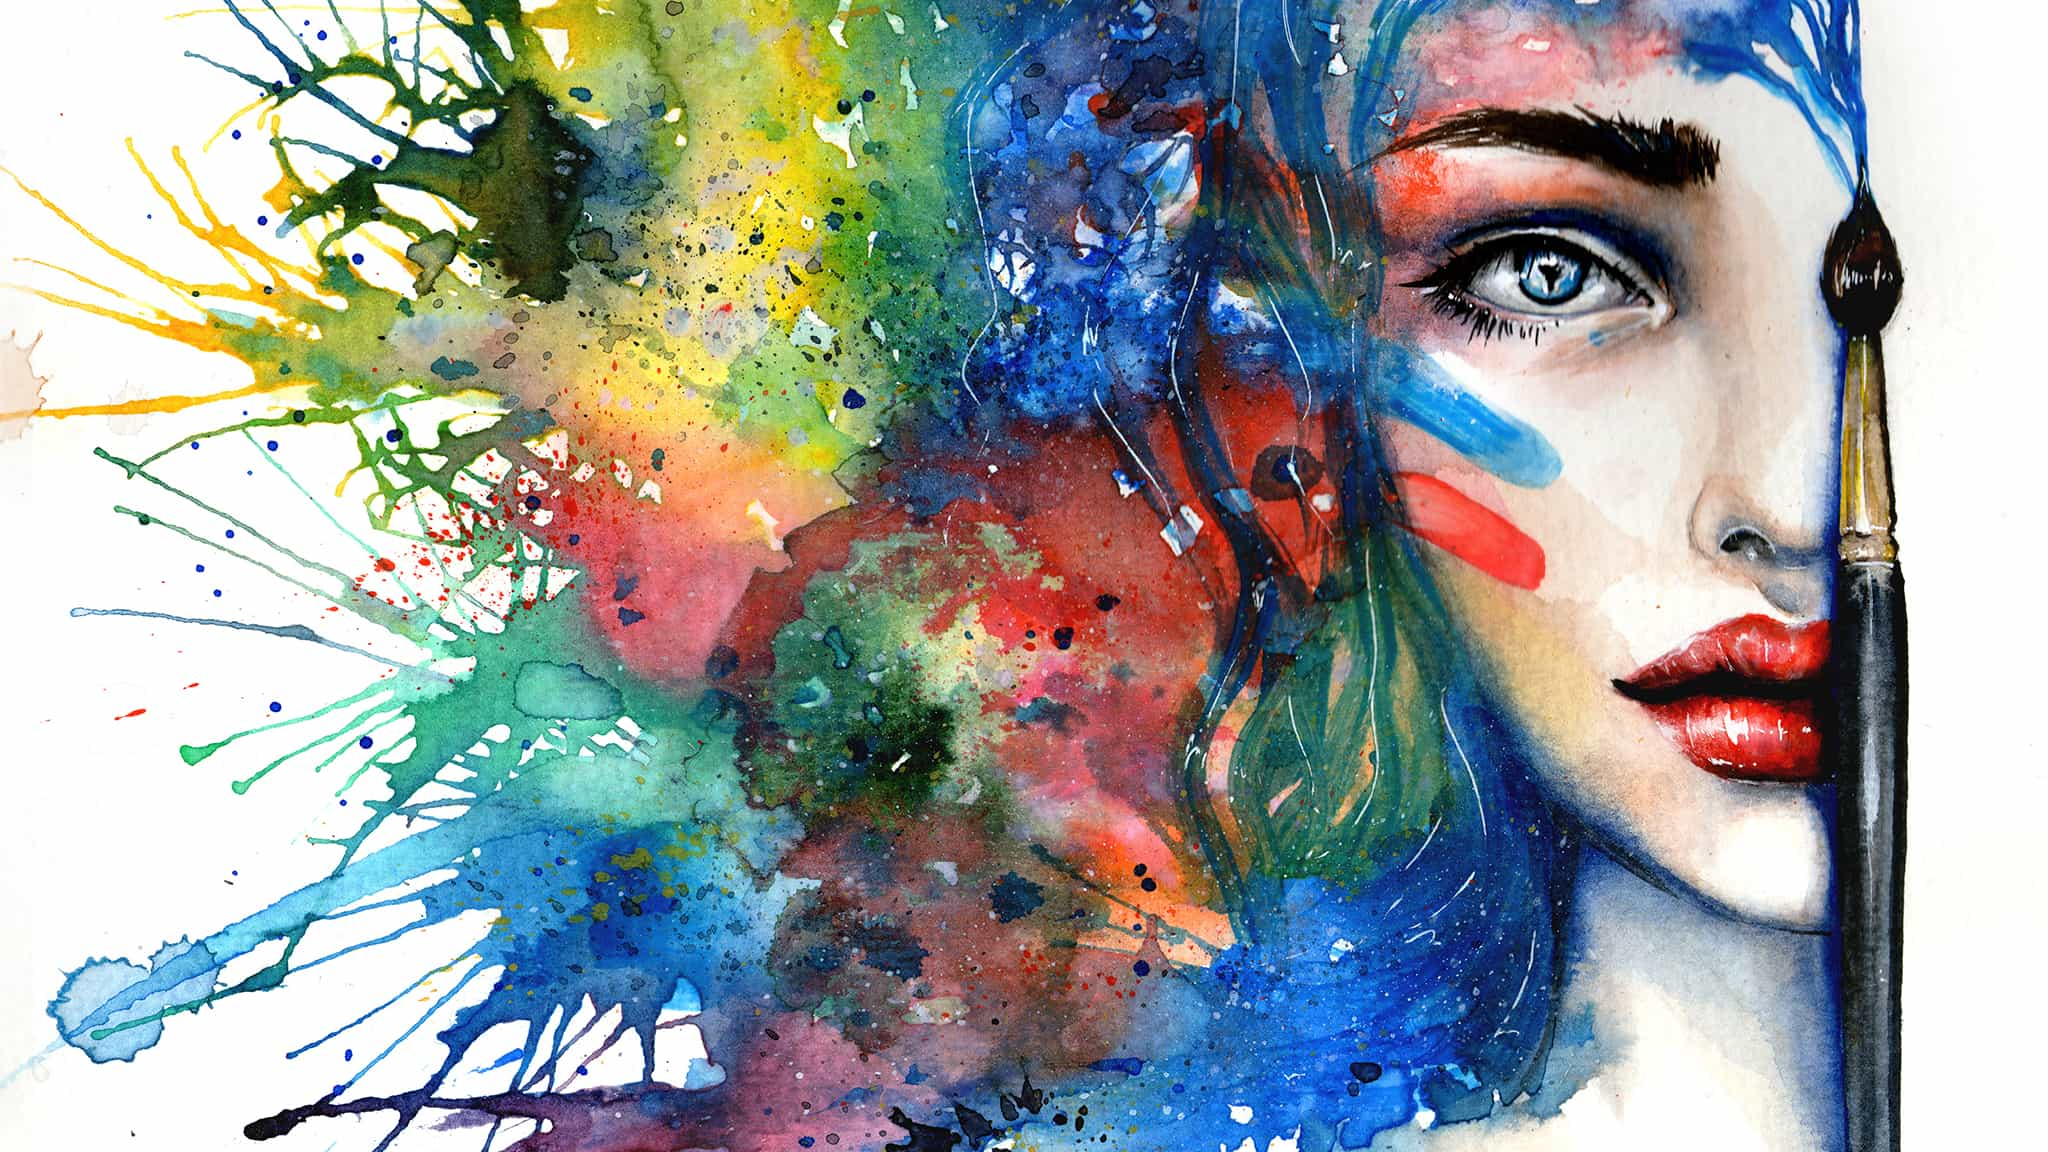 A Painting Of Half Of A Woman's Face With Colorful Splashes Of Color As Hair To Illustrate Creativity